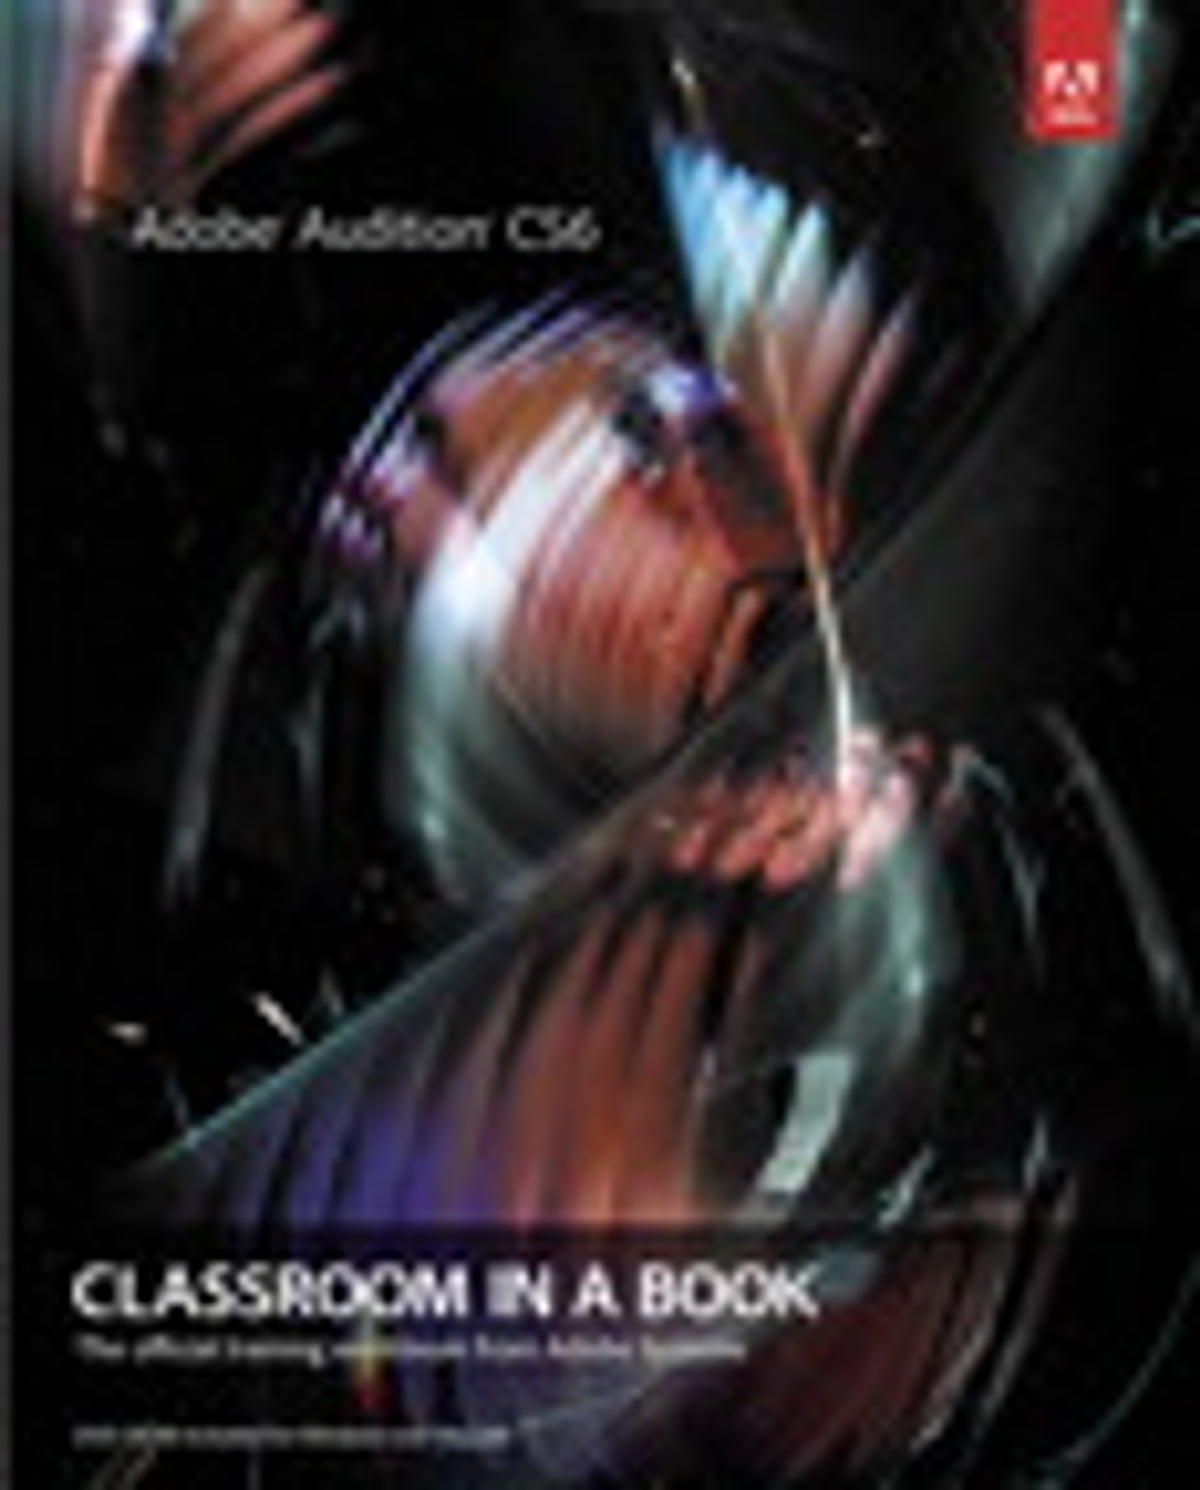 Adobe Audition CS6 Classroom in a Book eBook by Adobe Creative Team -  9780133016819 | Rakuten Kobo